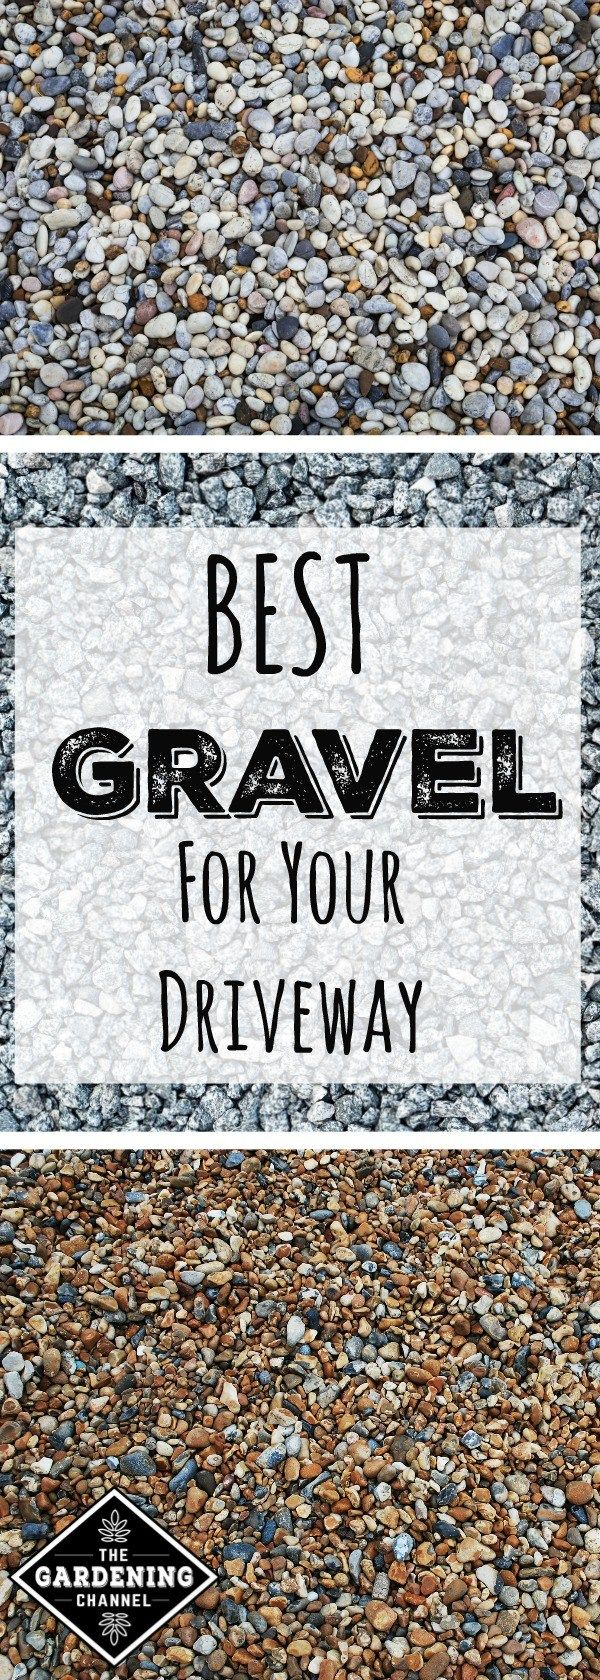 Best Gravel For your Driveway